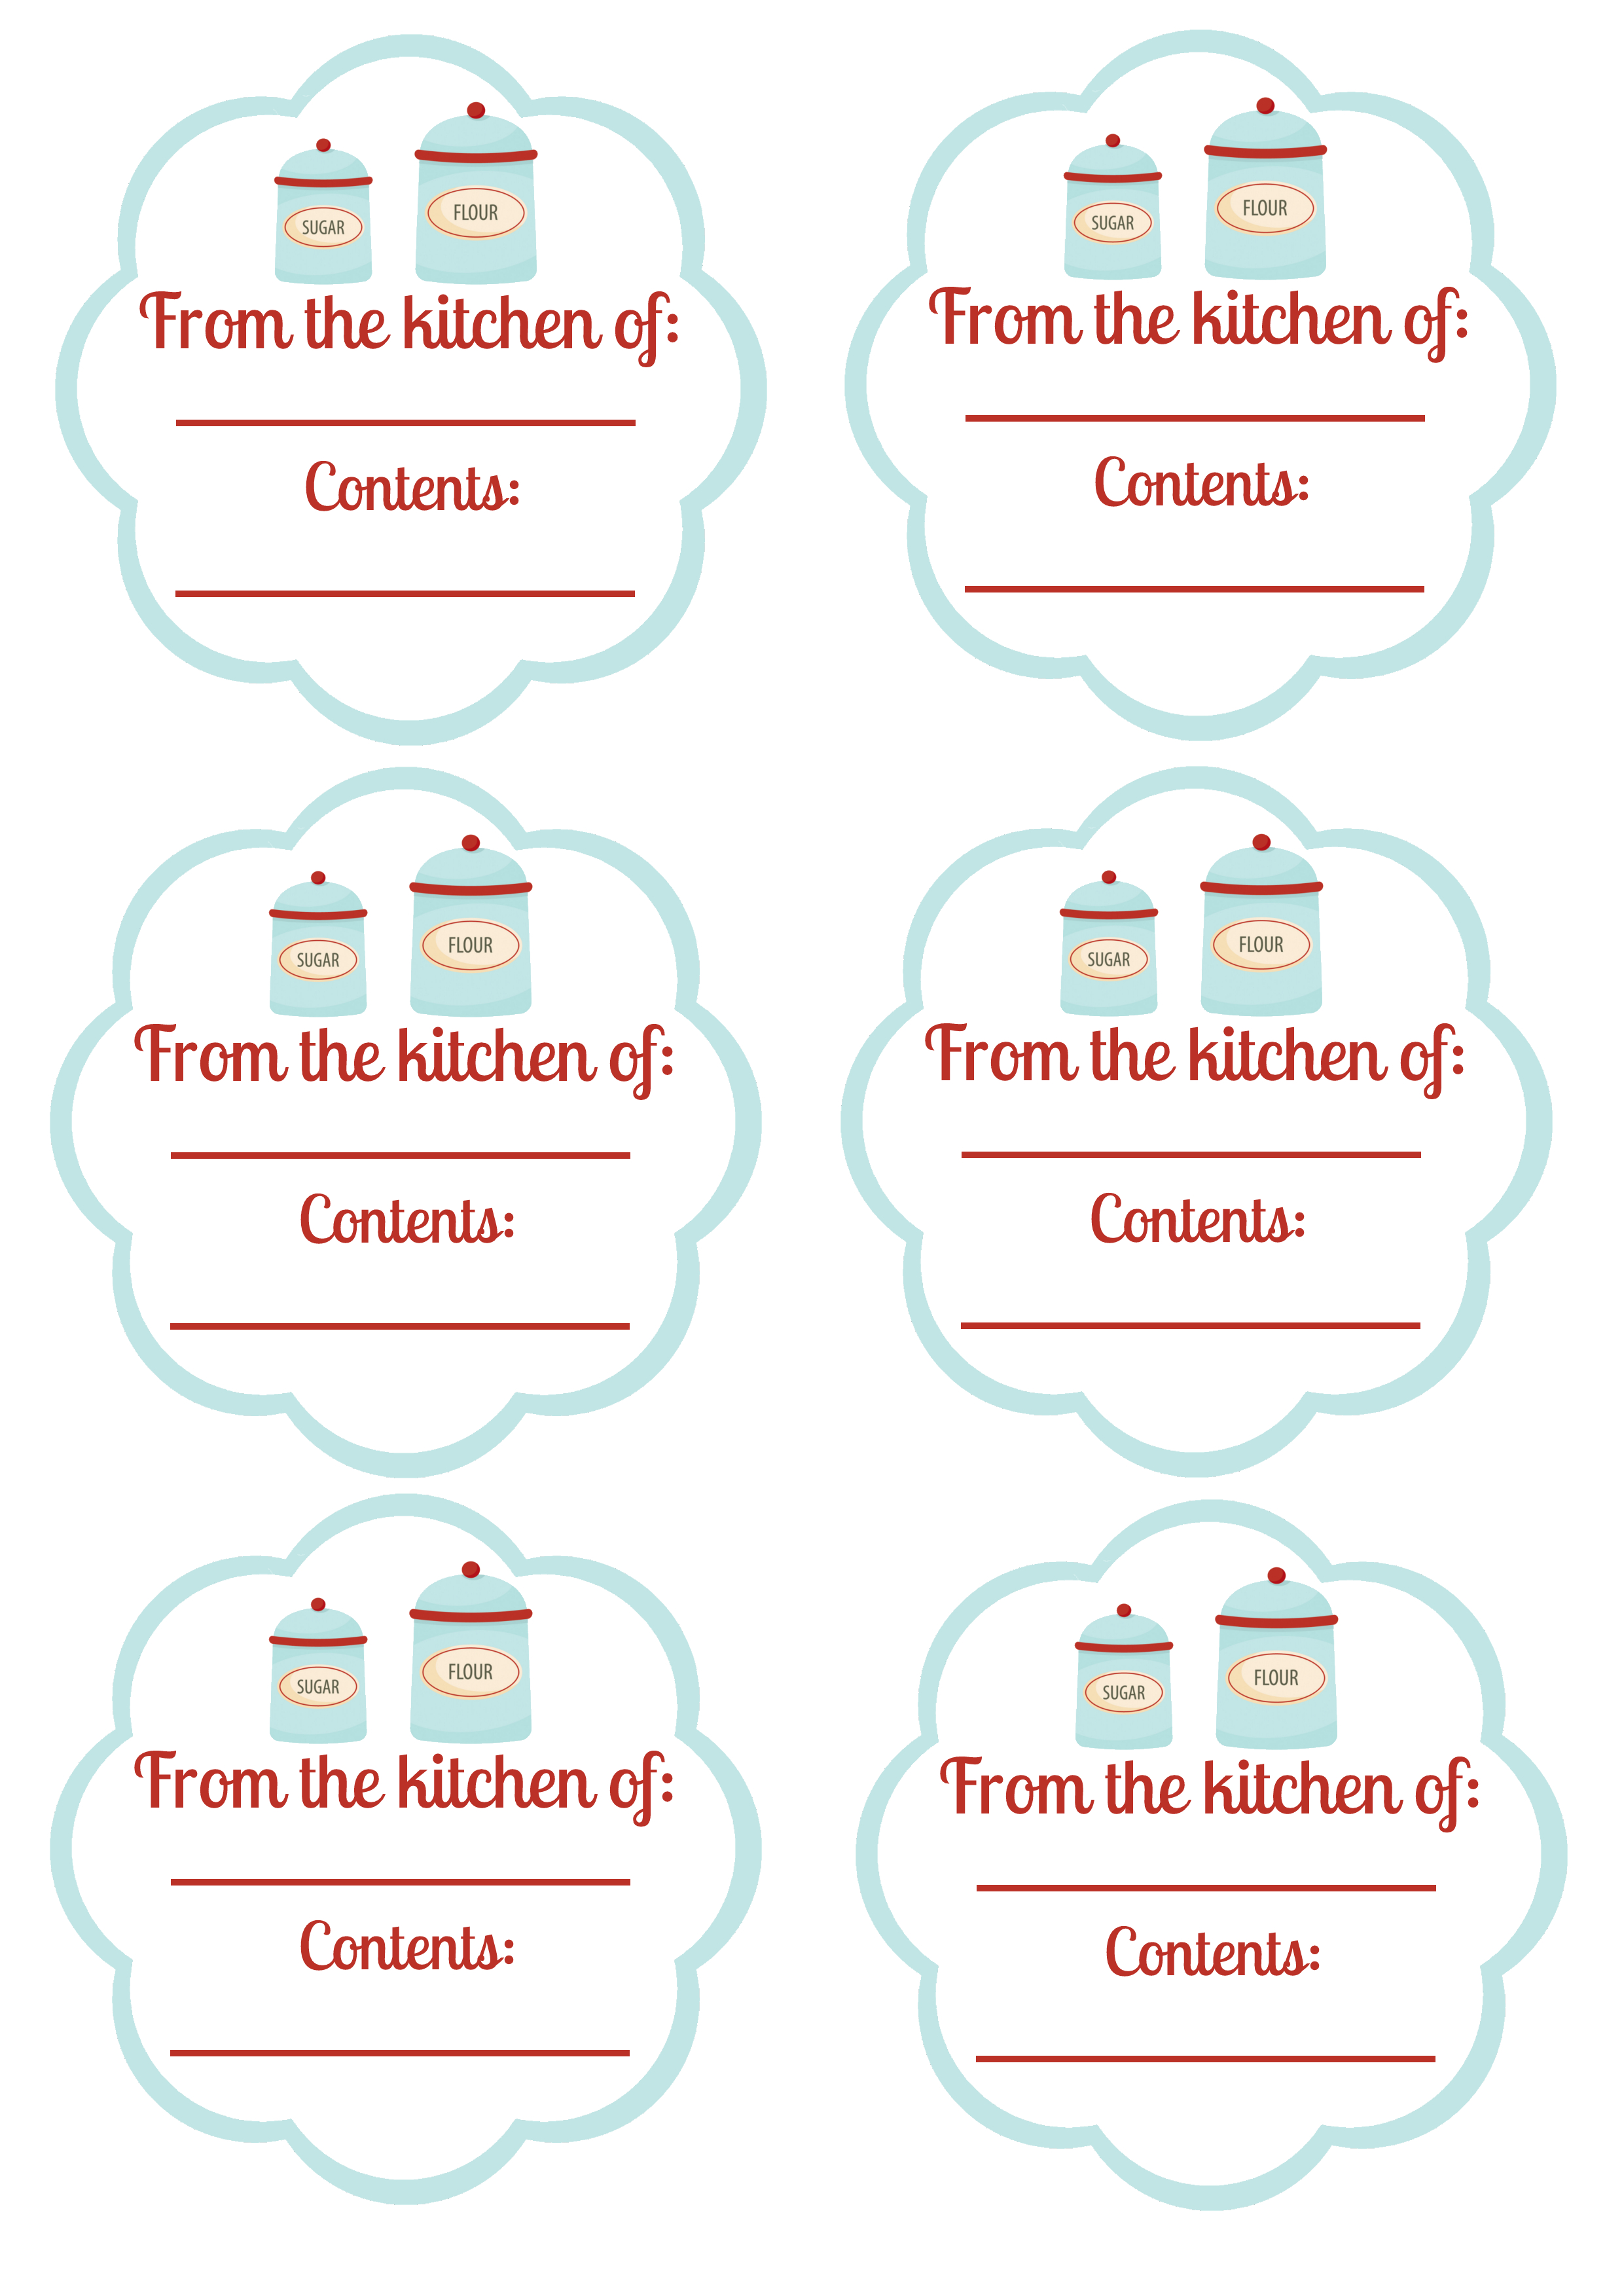 Free Printable - Food Labels And Canning Labels - Blissfully - Free Printable Food Labels